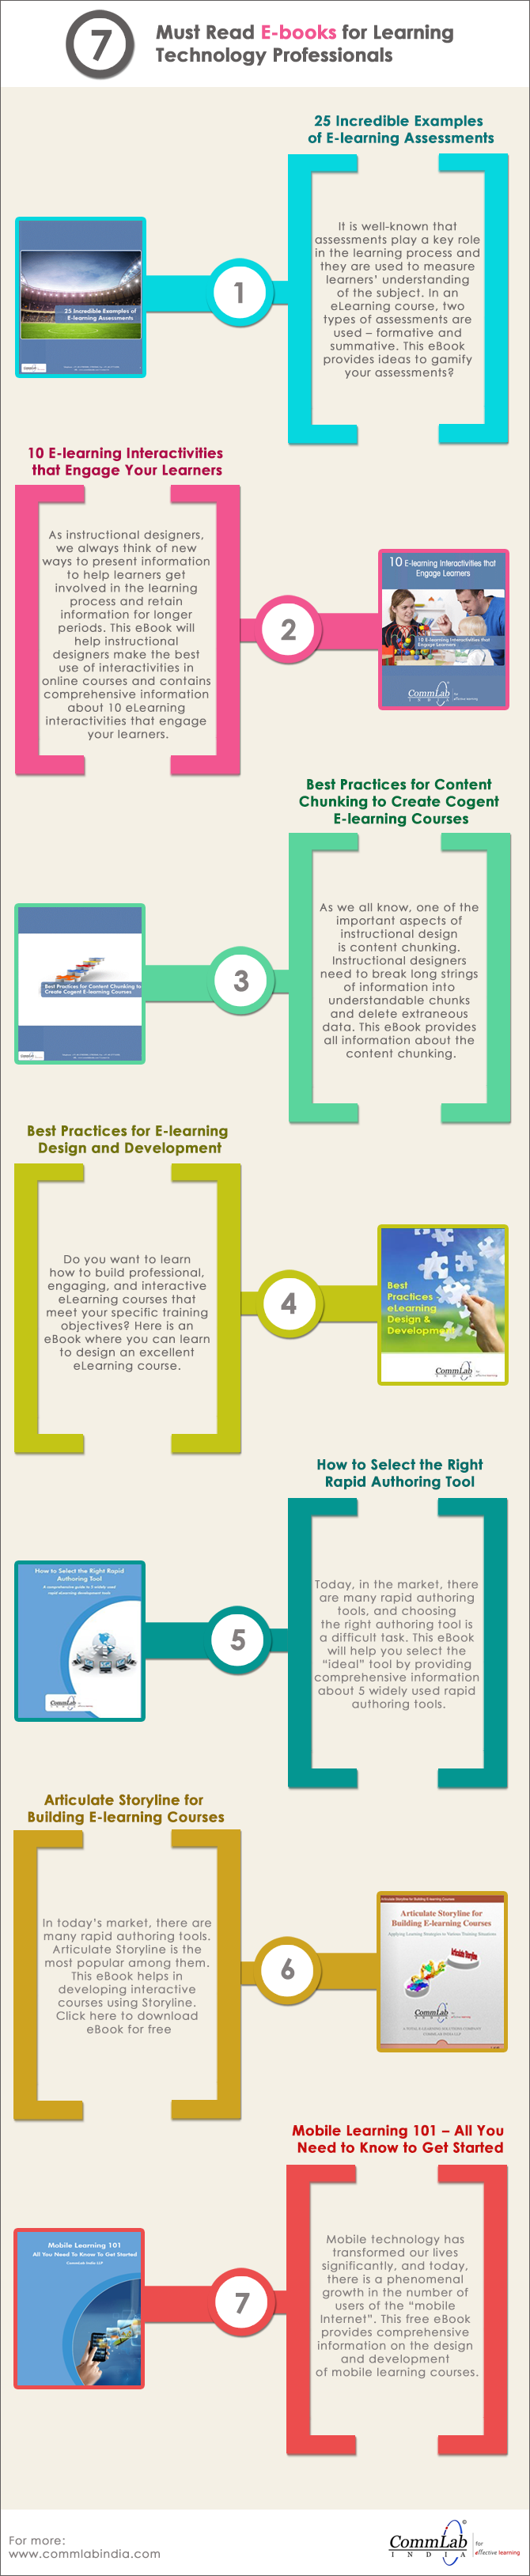 7 Must Read E-books for Learning Technology Professionals [Infographic]